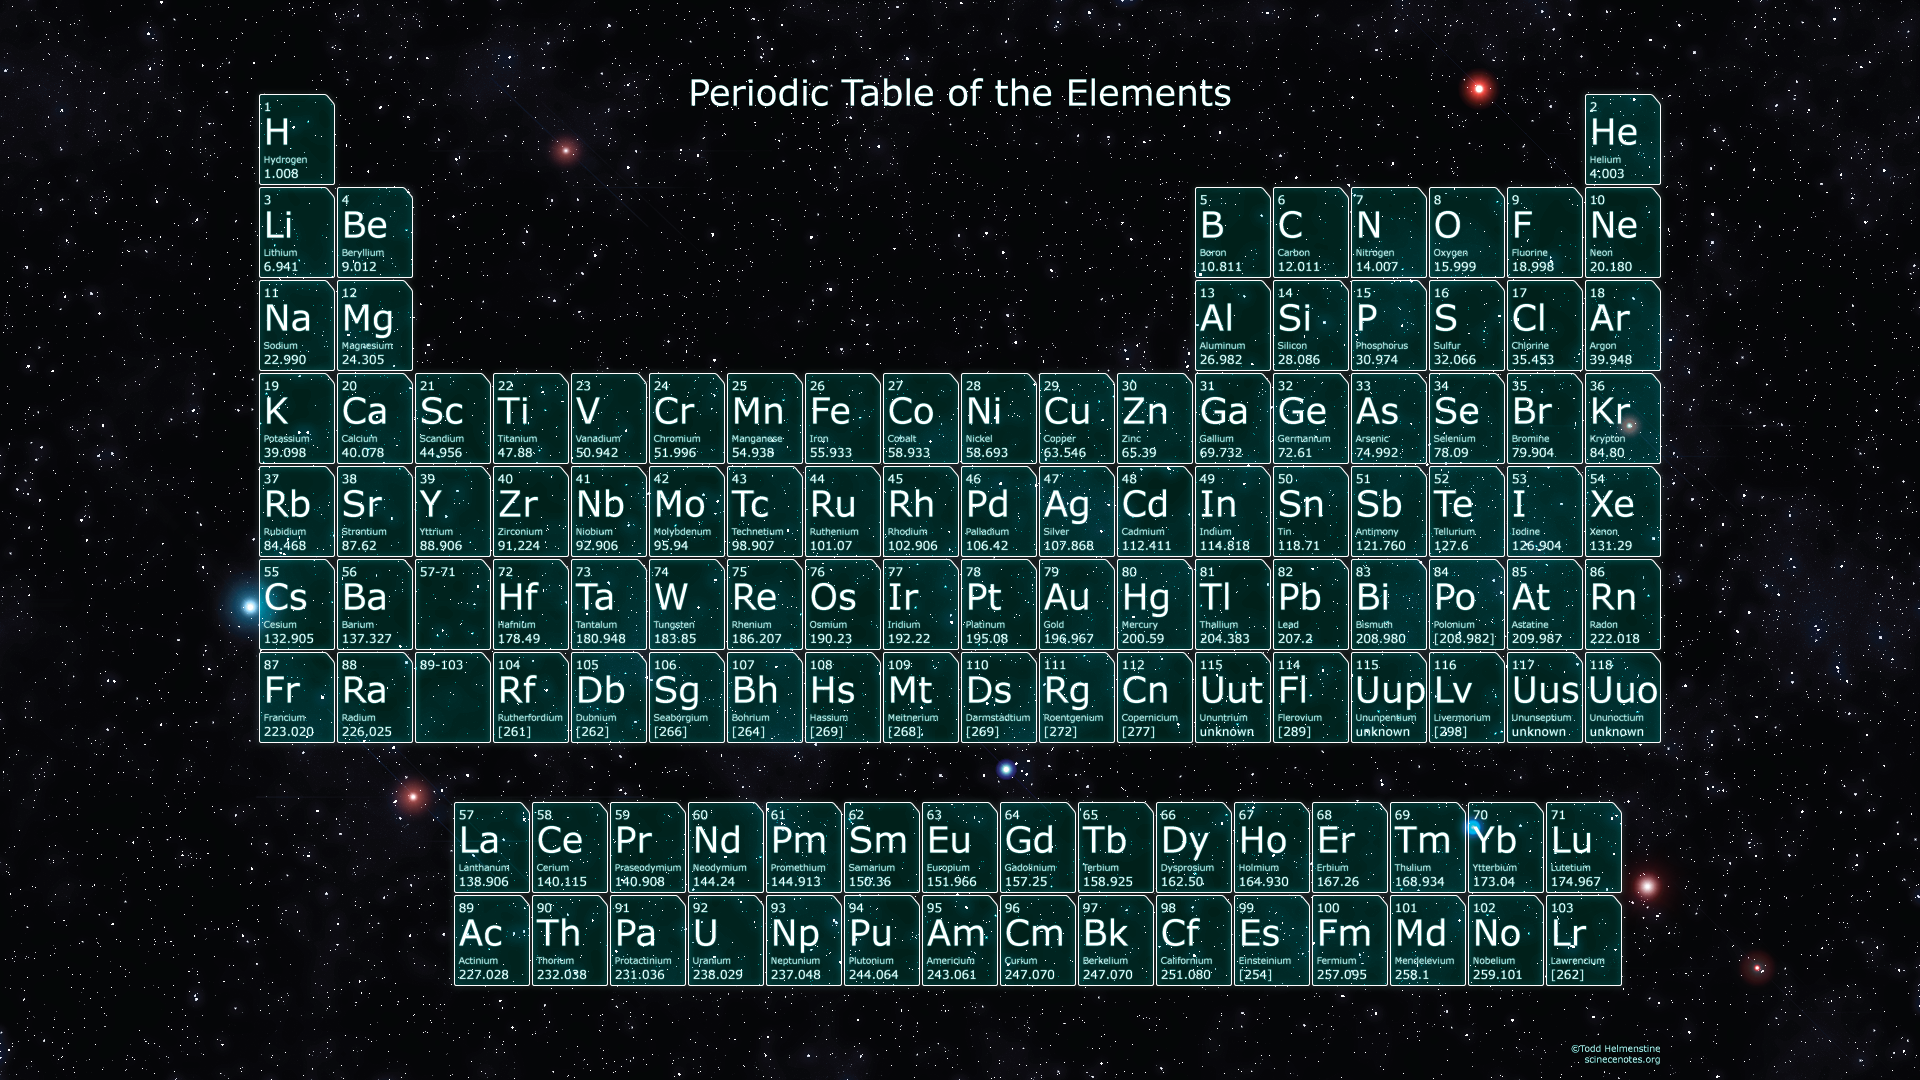 22 periodic table name generator breaking bad periodic name systematic names element periodic name bad table generator breaking hd wallpaper table table palette color elements periodic periodic tags urtaz